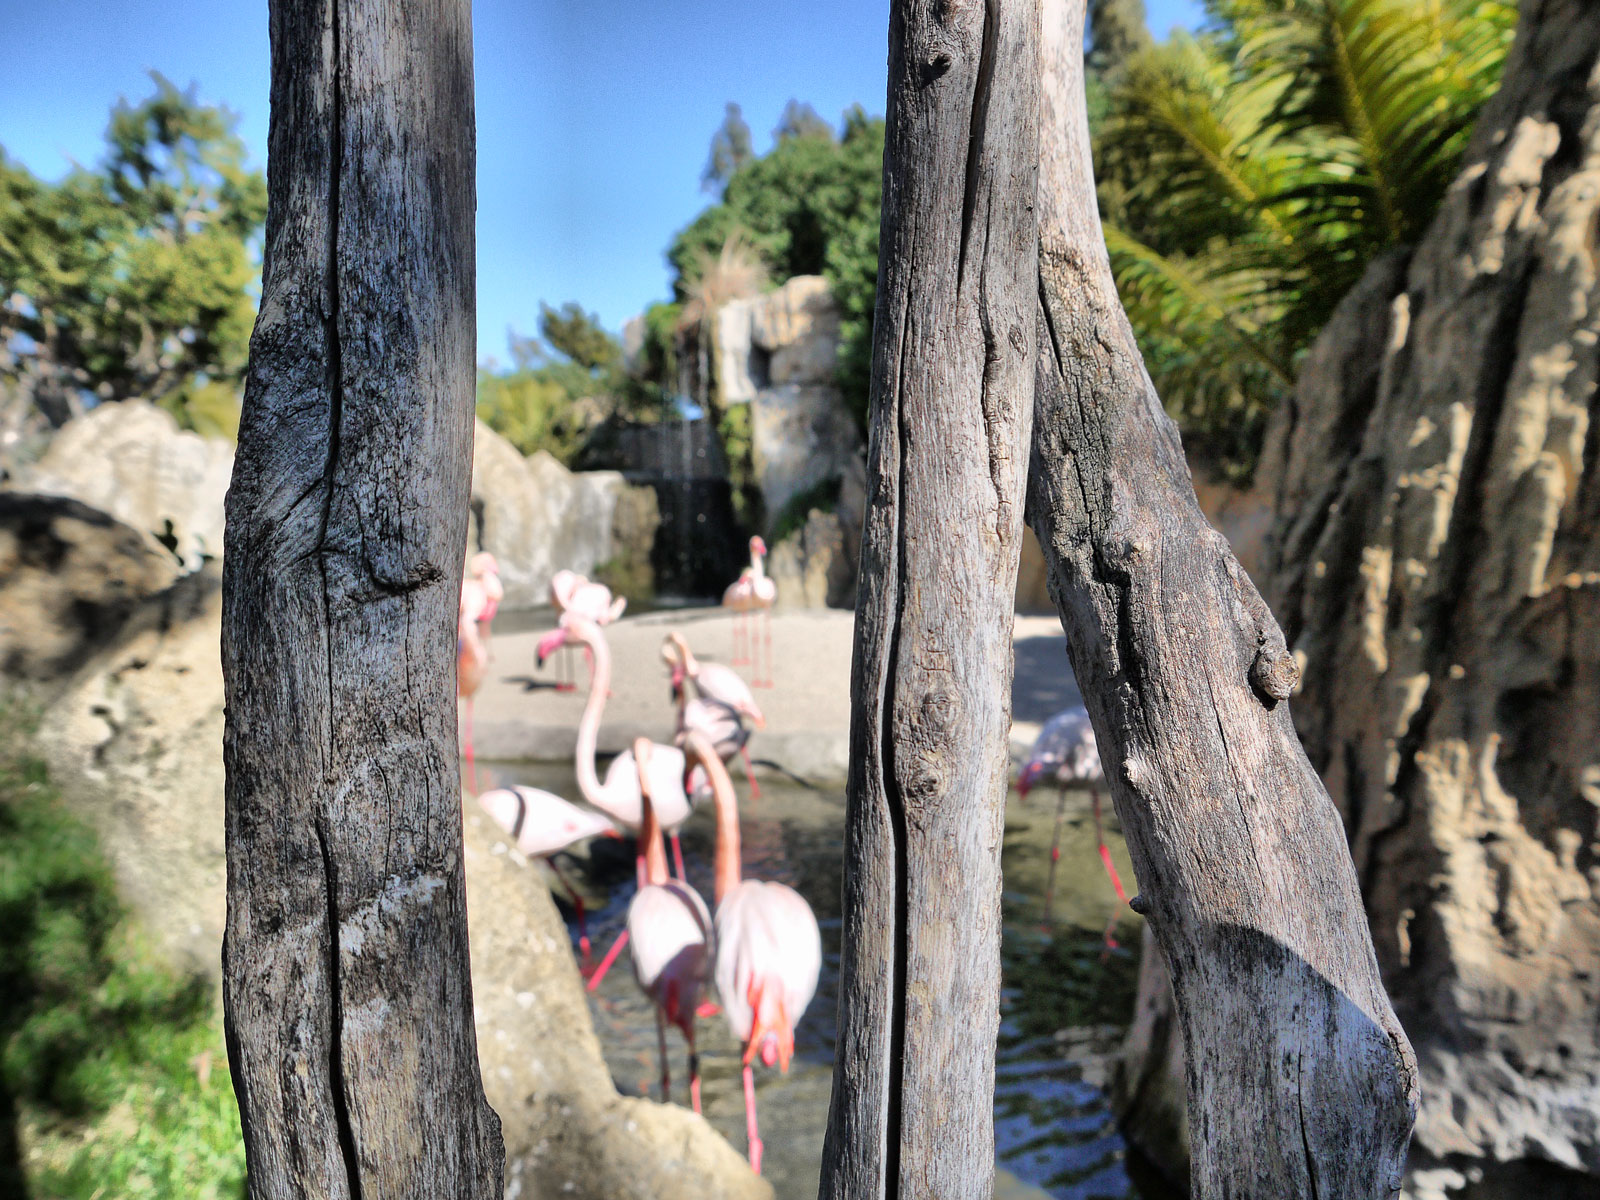 Peeping at The Flamingoes in the Bioparc - Valencia, Spain